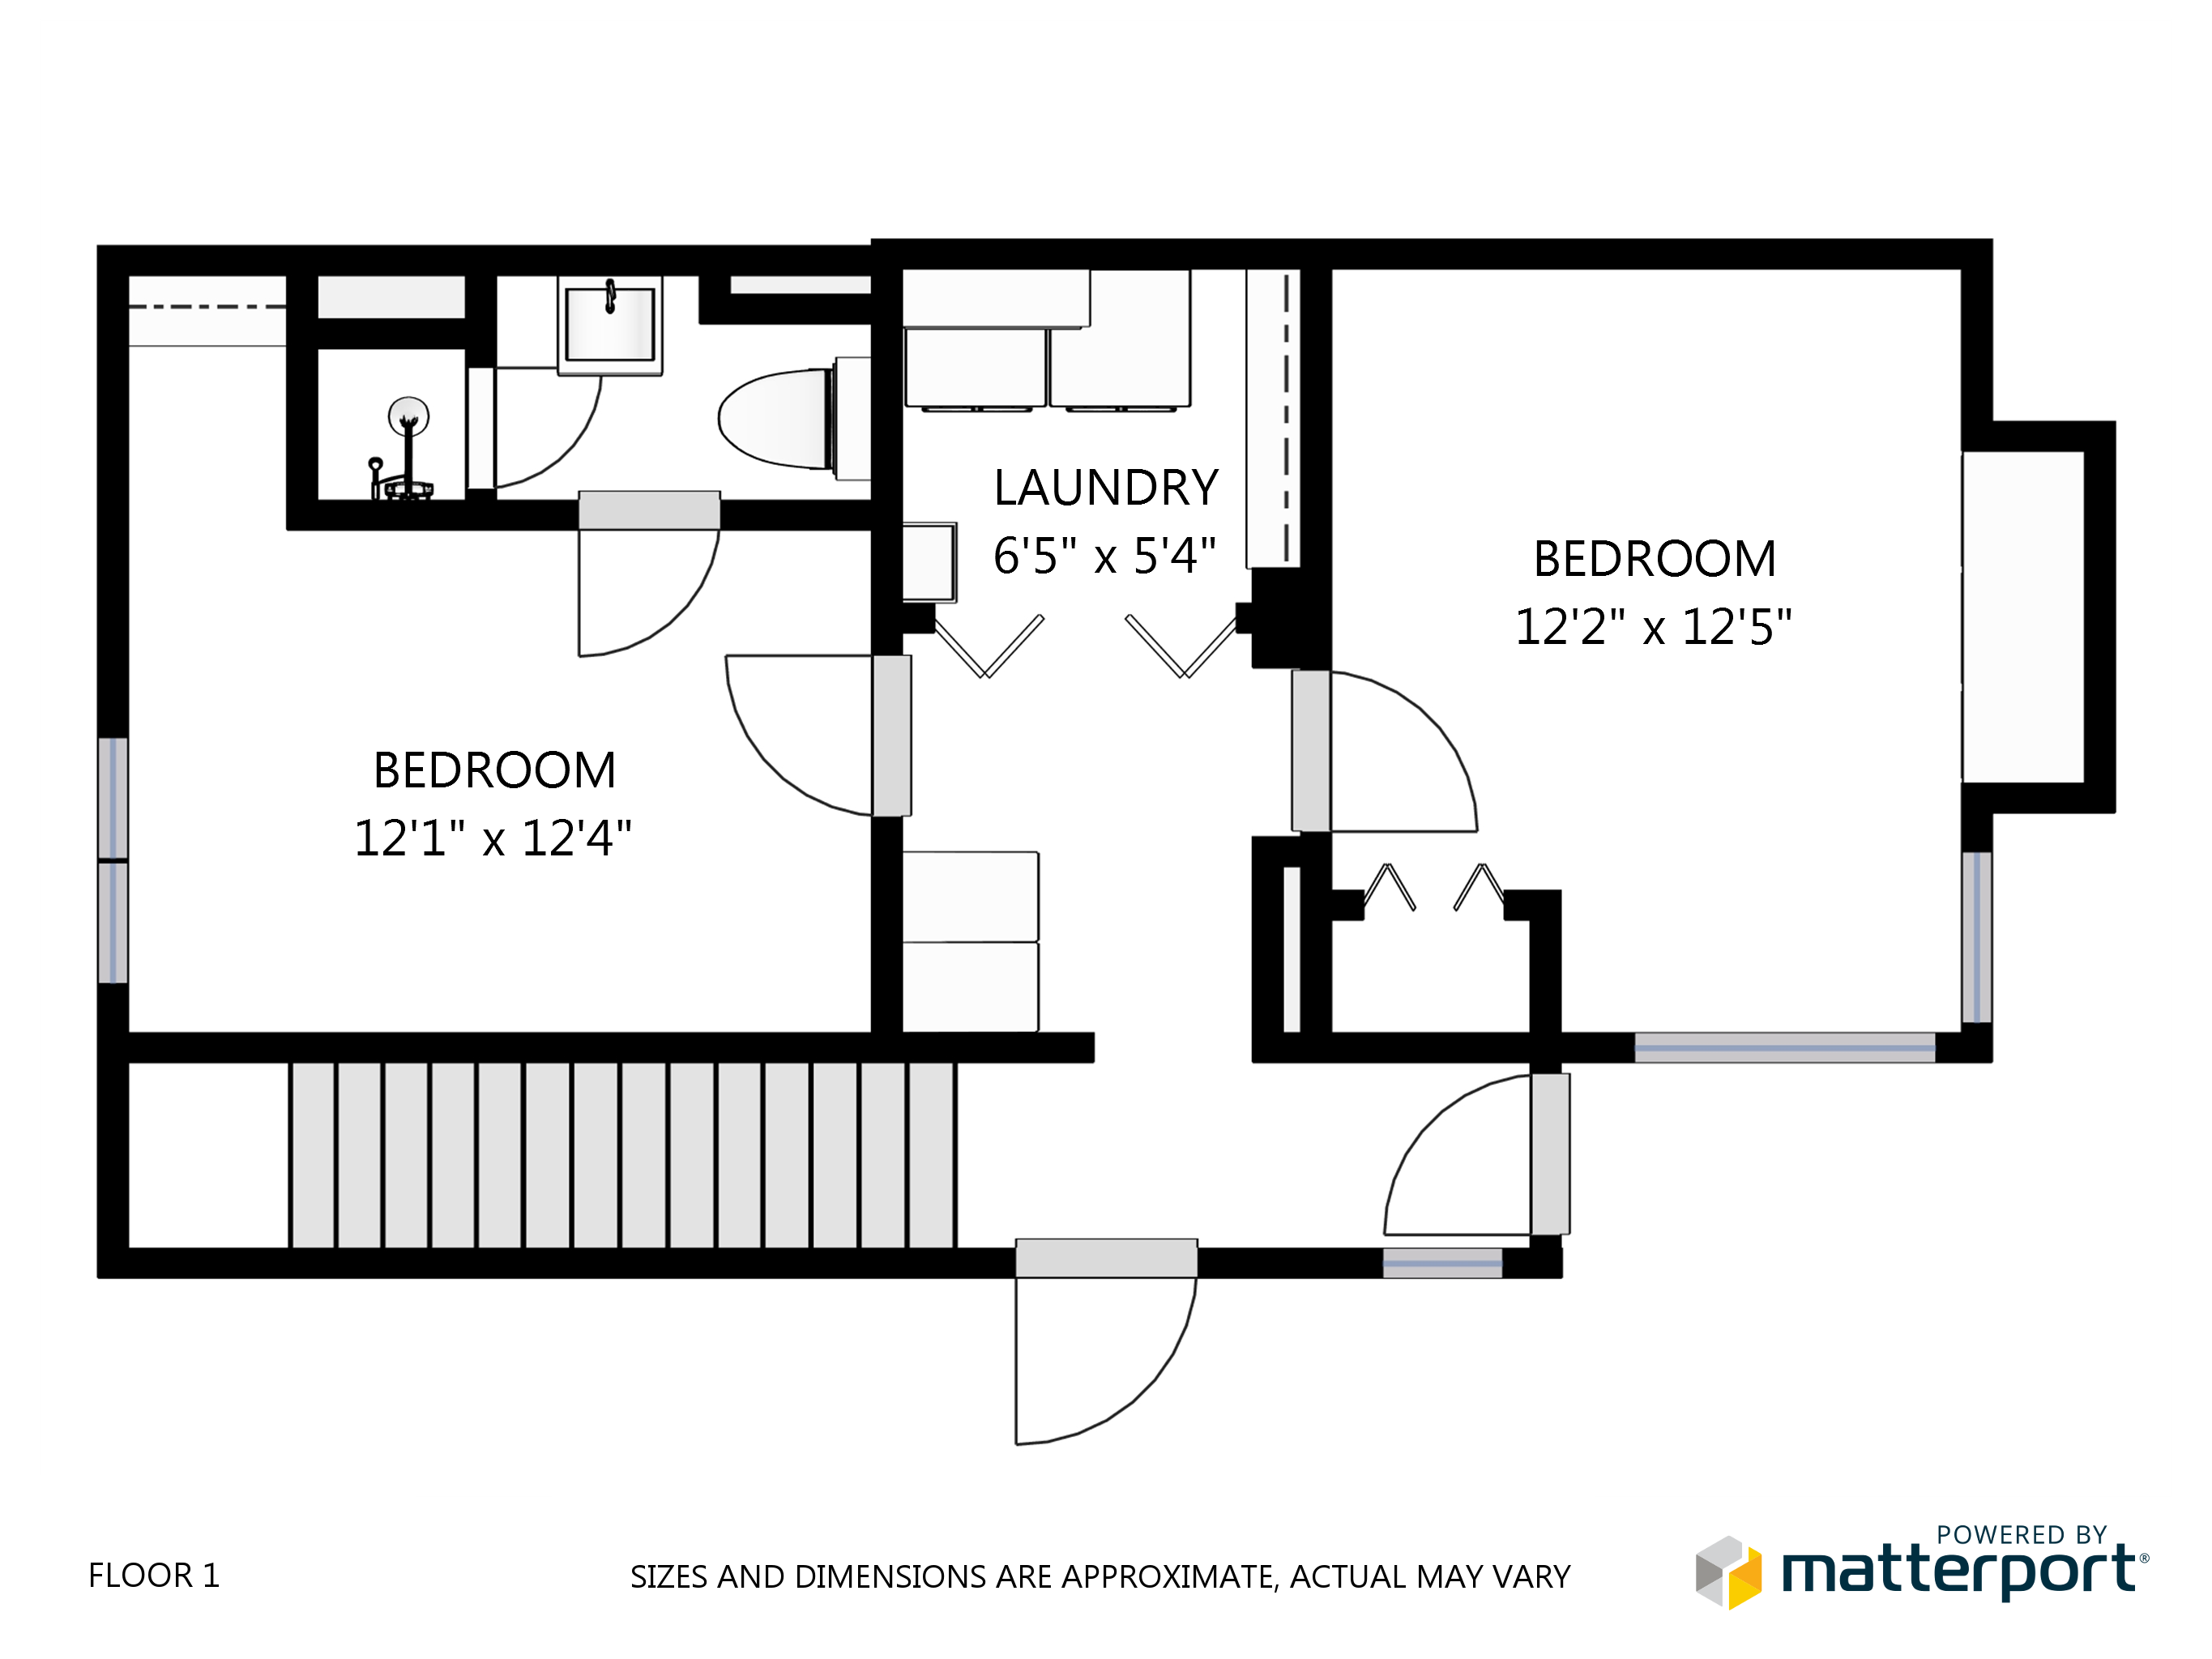 Create Schematic Floor Plans online right from your Matterport